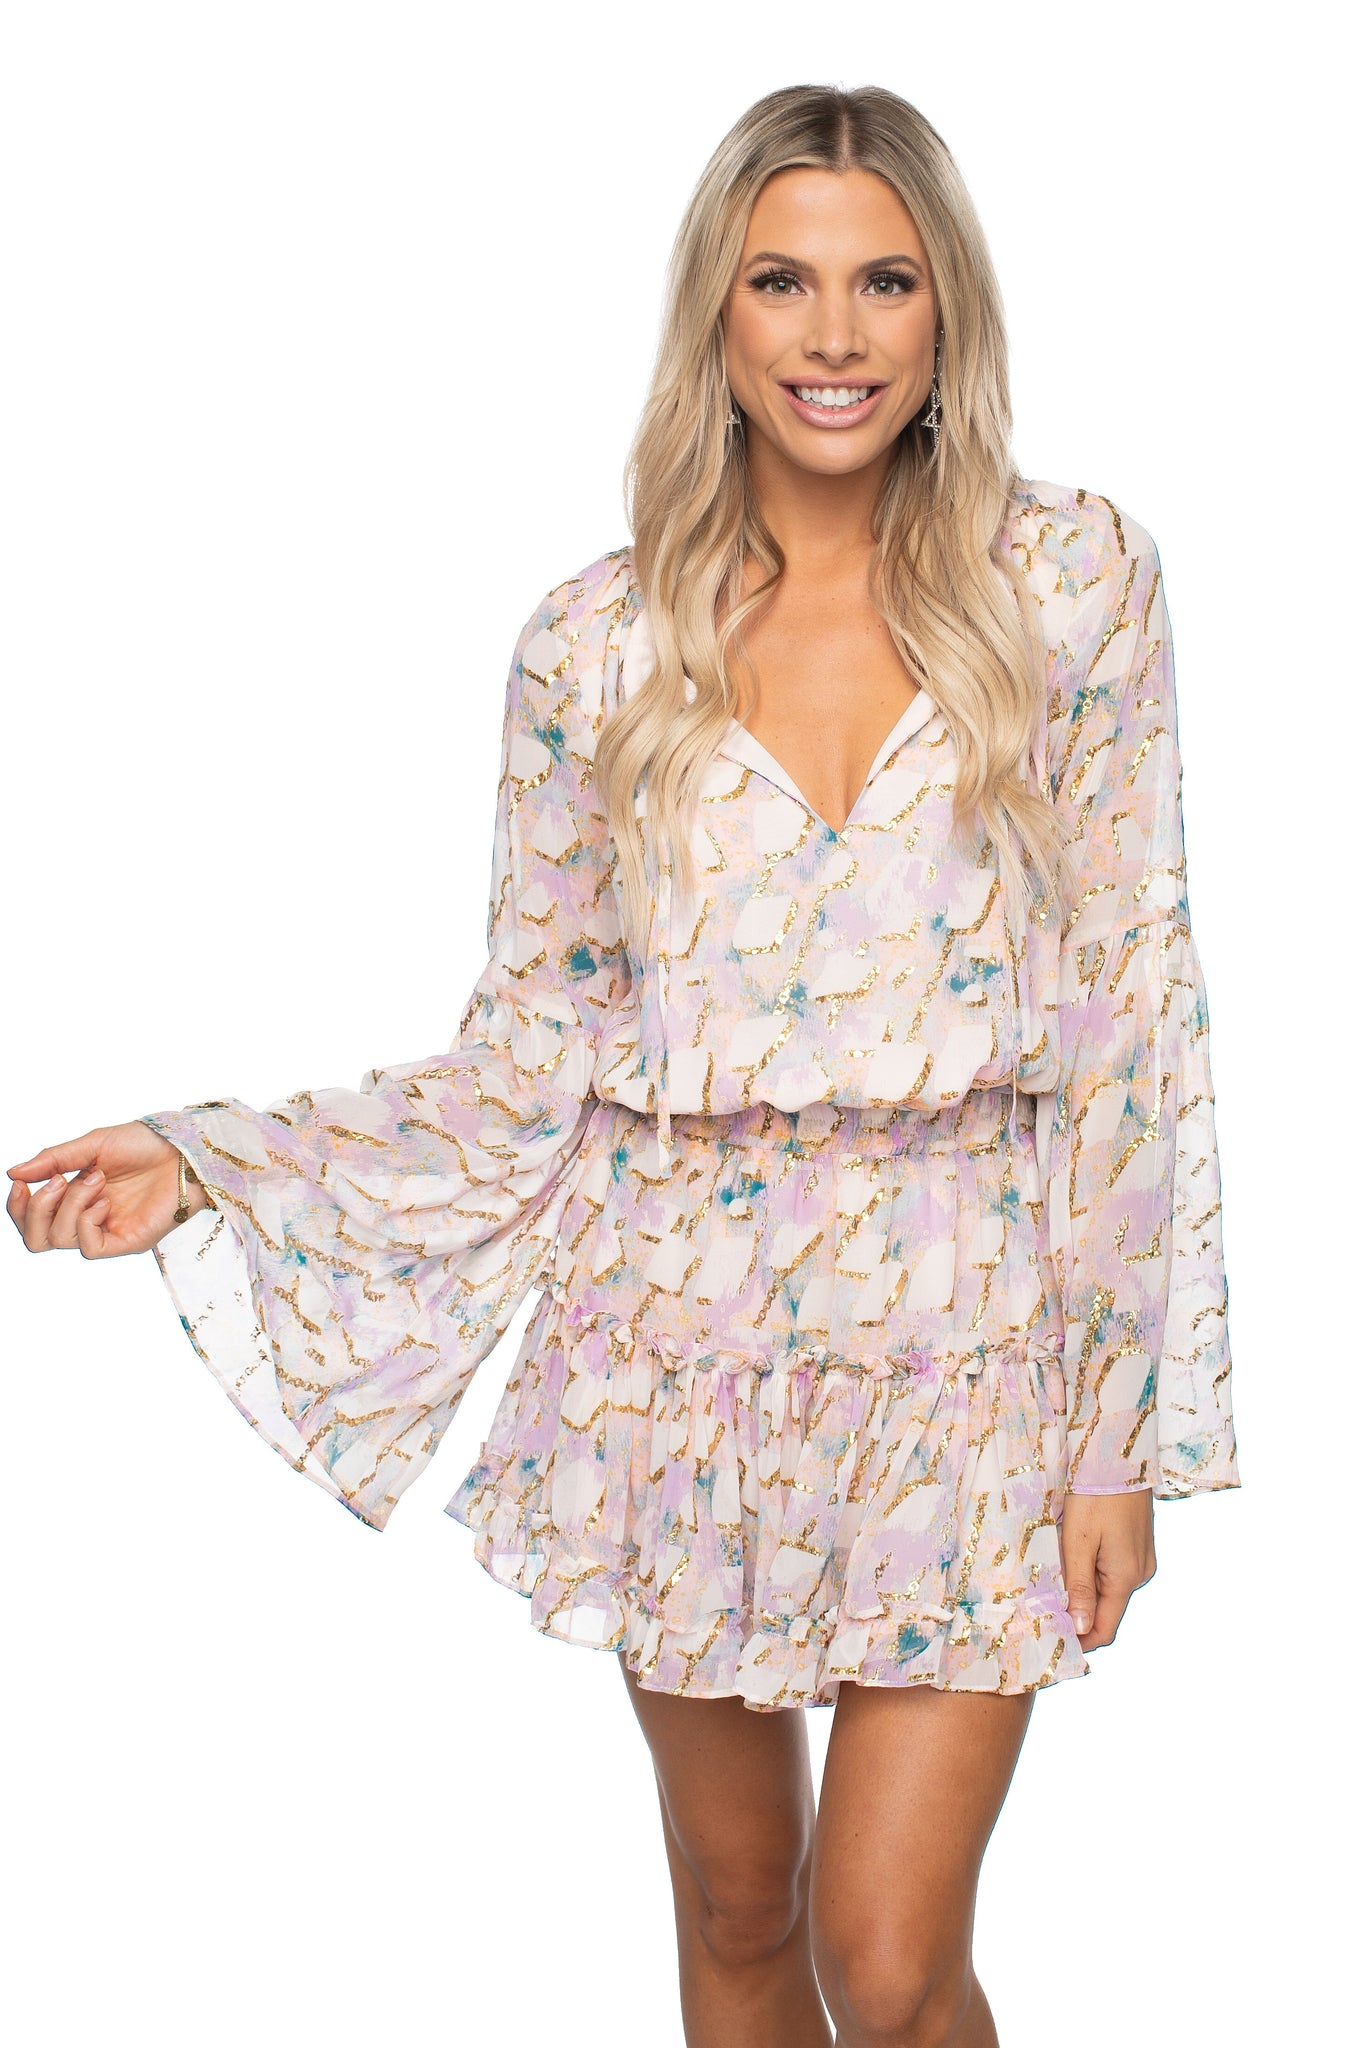 Buddy Love Zozo Magical Dress